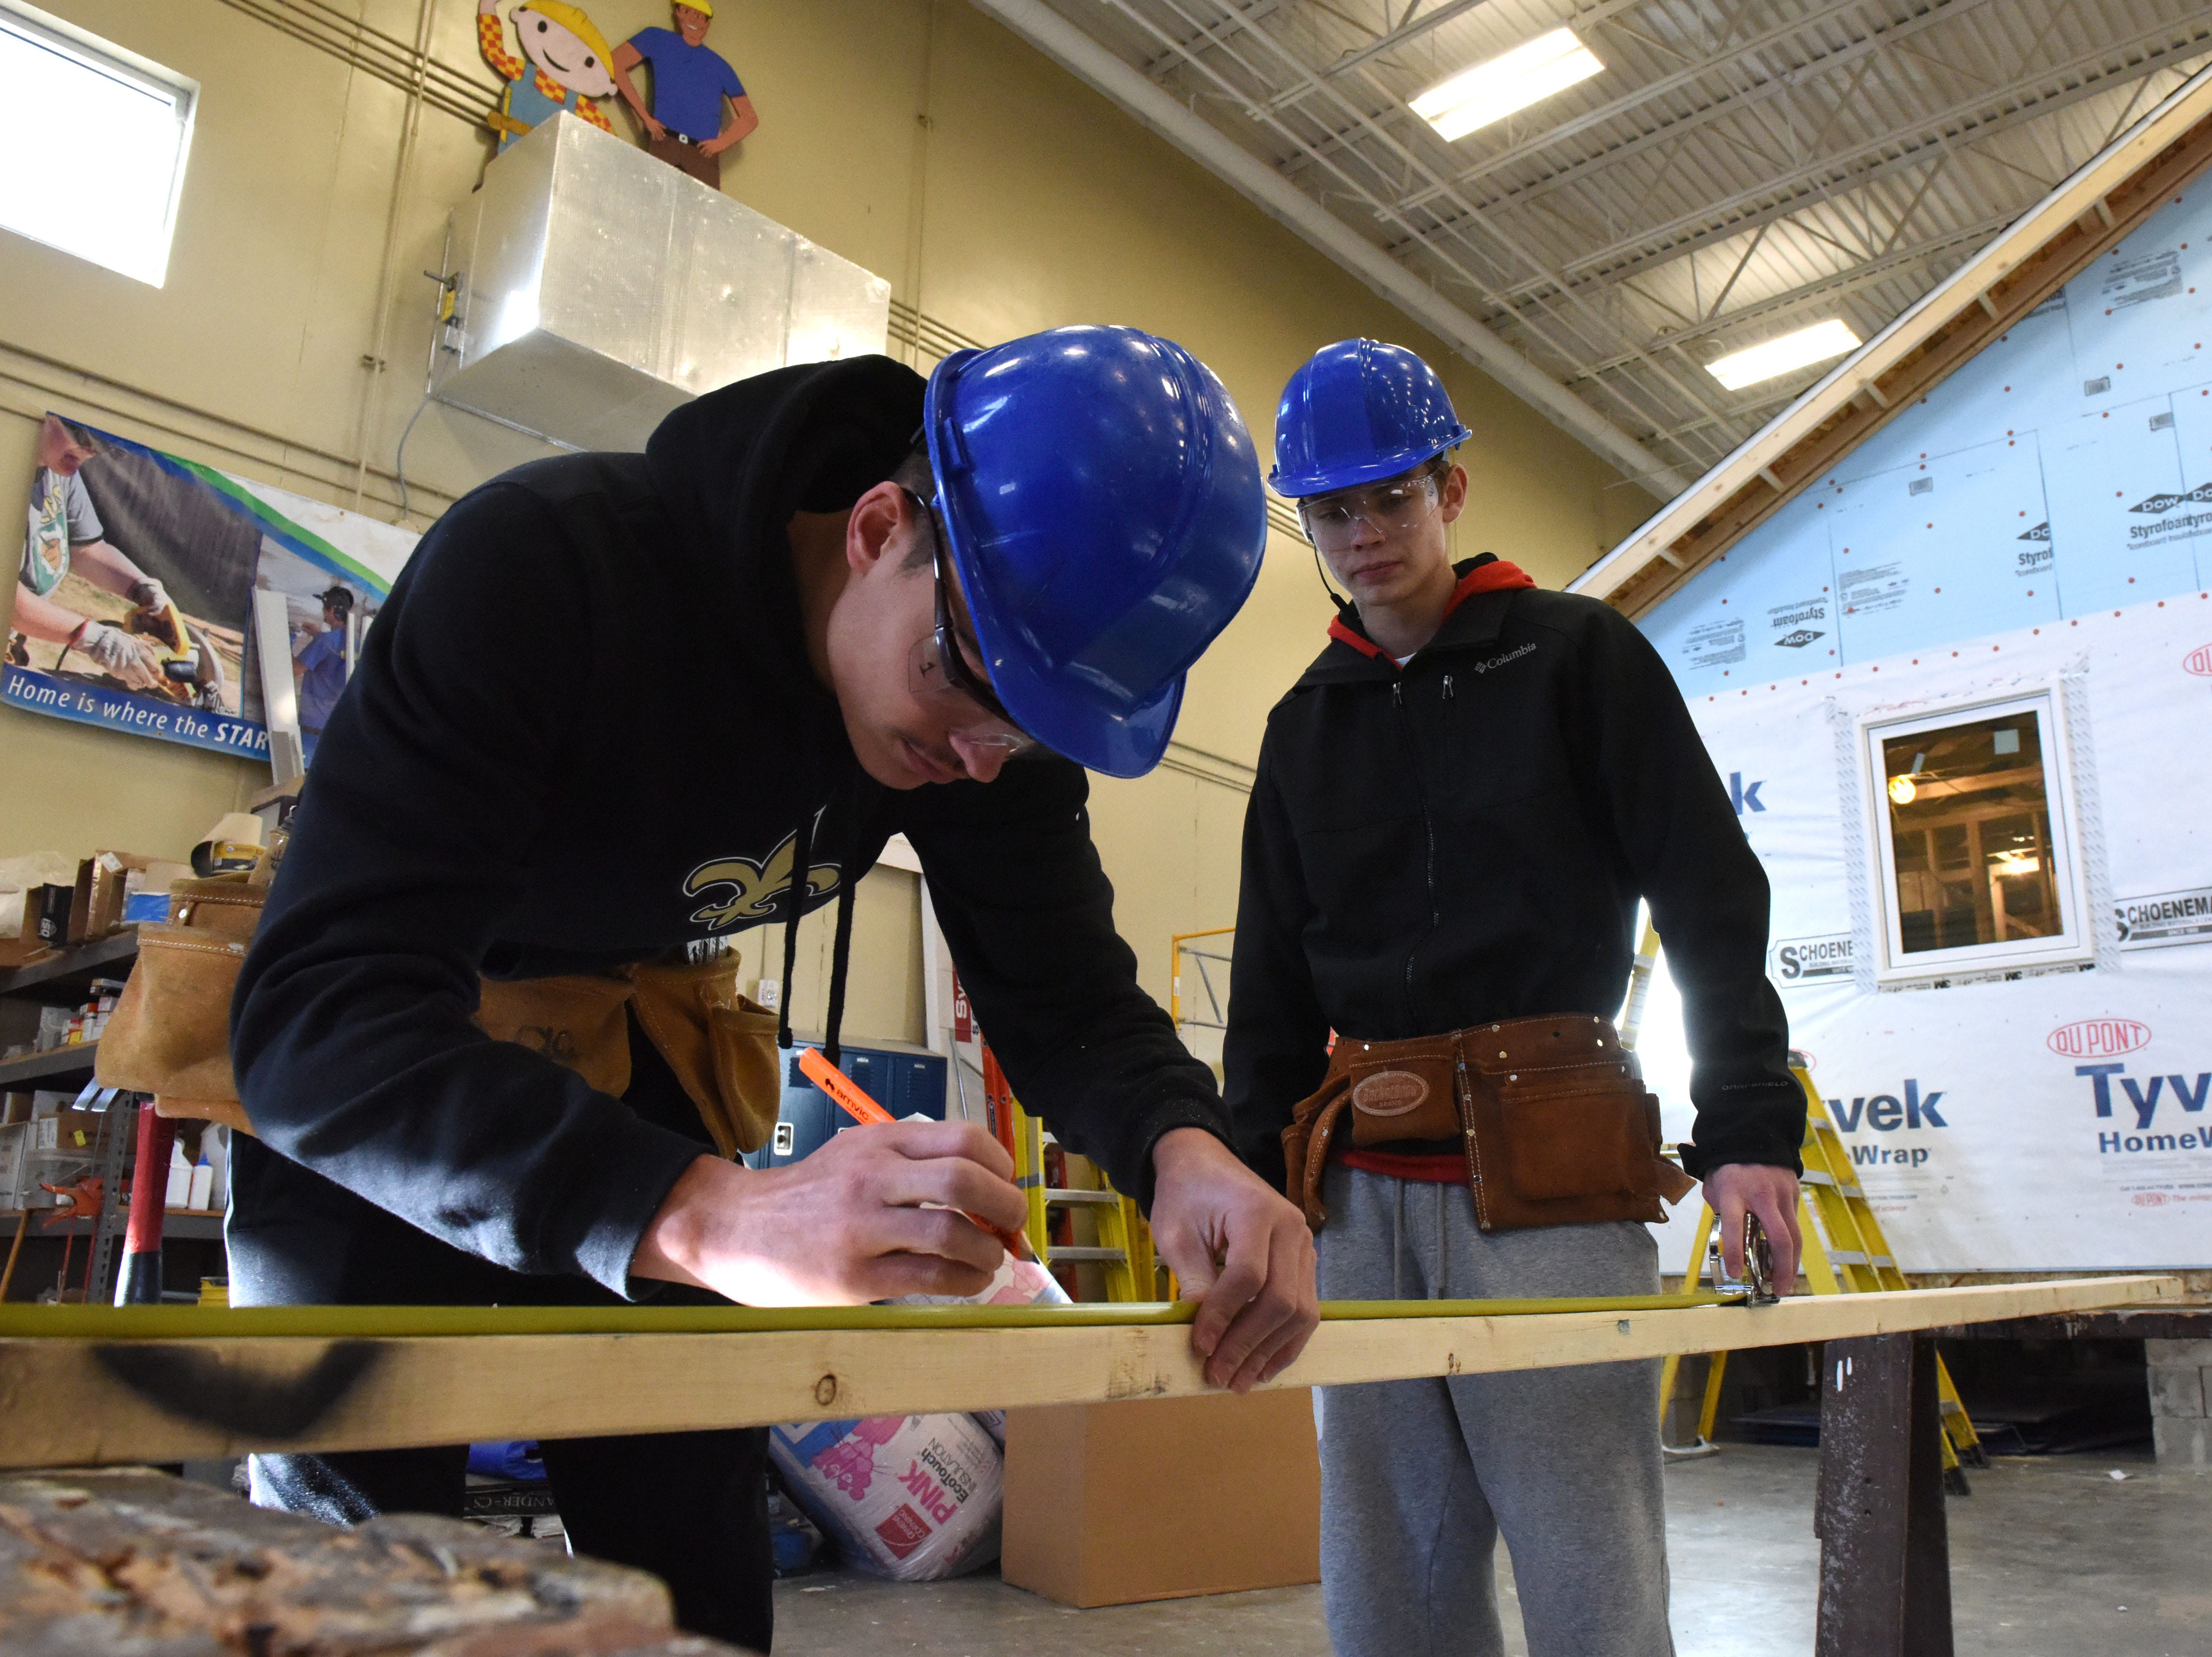 Douglas Wells, left, and Colby Tople participate in carpentry class at Career and Technical Education Academy, Monday, Jan. 7, 2019 in Sioux Falls, S.D.